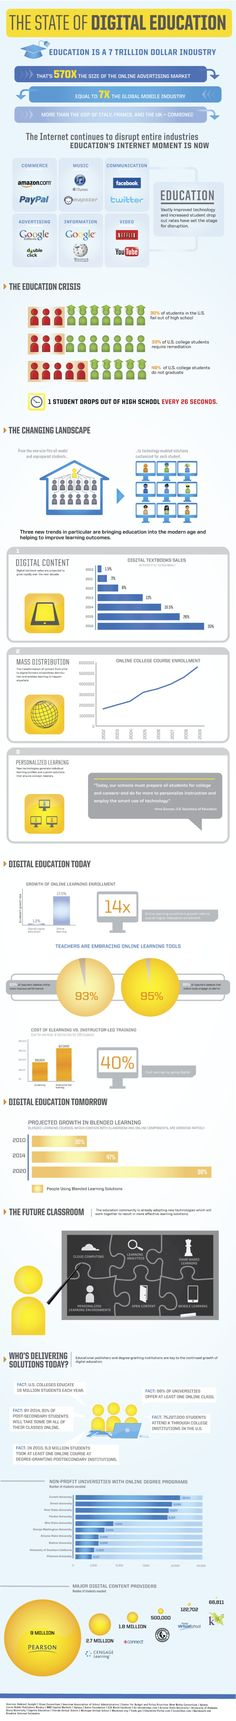 The State of Digital Education Infographic #elearning #edtech #edtechchat